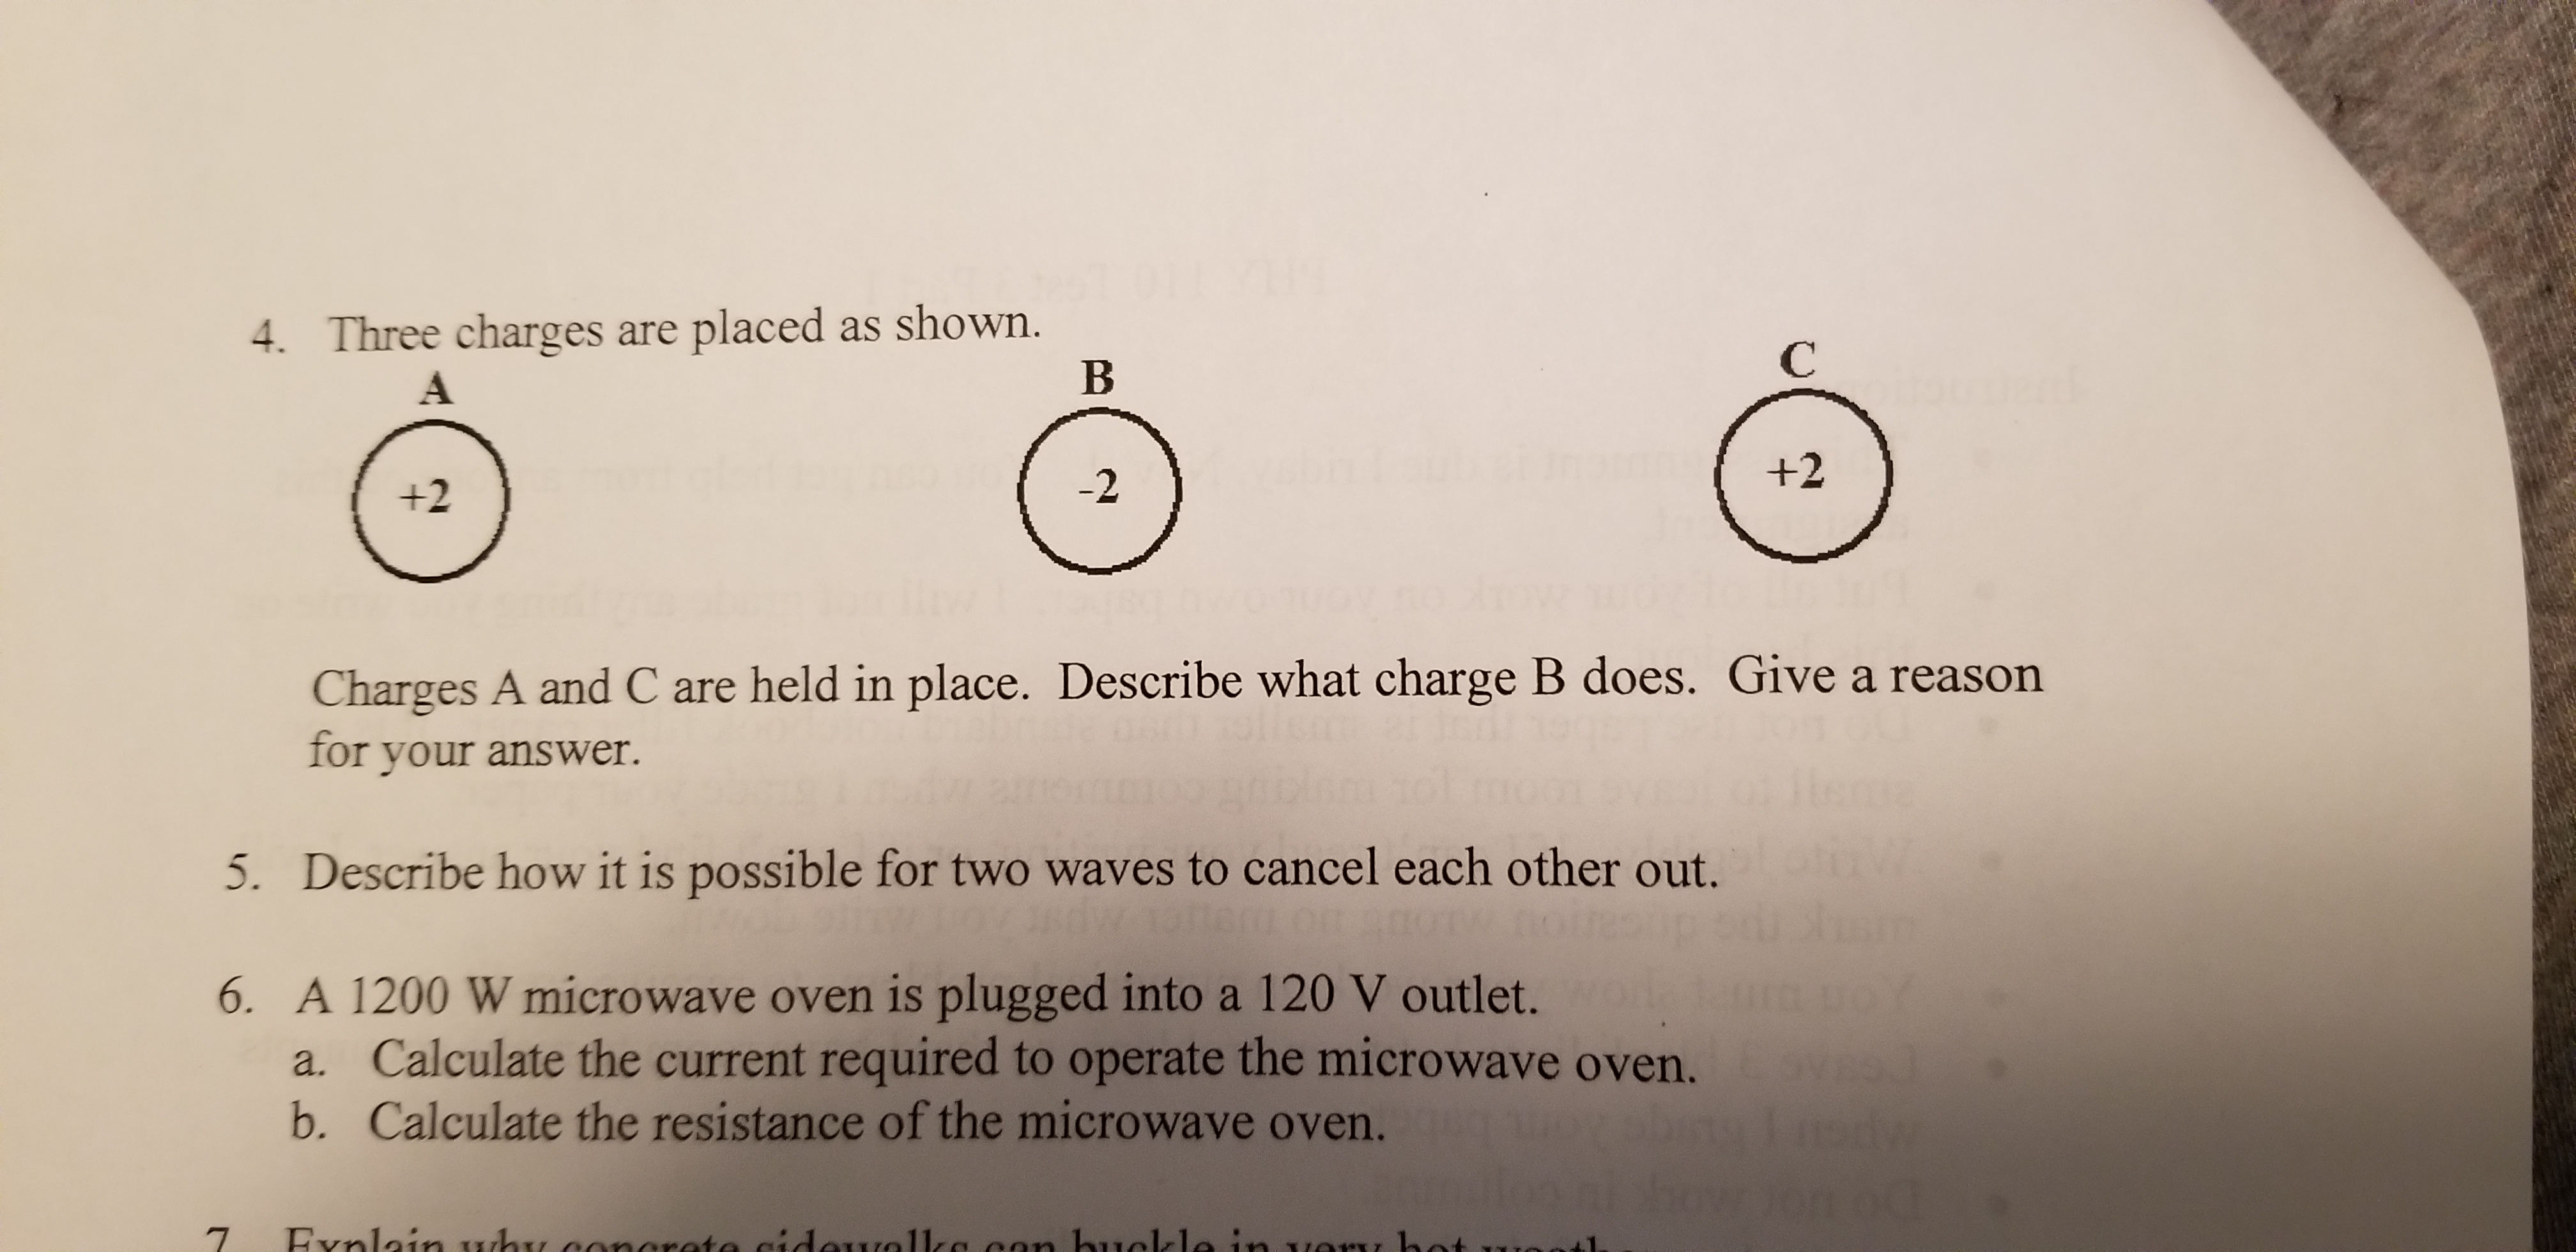 4. Three charges are placed as shown. В С +2 -2 +2 Charges A and C are held in place. Describe what charge B does. Give a reason for your answer. 5. Describe how it is possible for two waves to cancel each other out. 6. A 1200 W microwave oven is plugged into a 120 V outlet. a. Calculate the current required to operate the microwave oven. b. Calculate the resistance of the microwave oven.